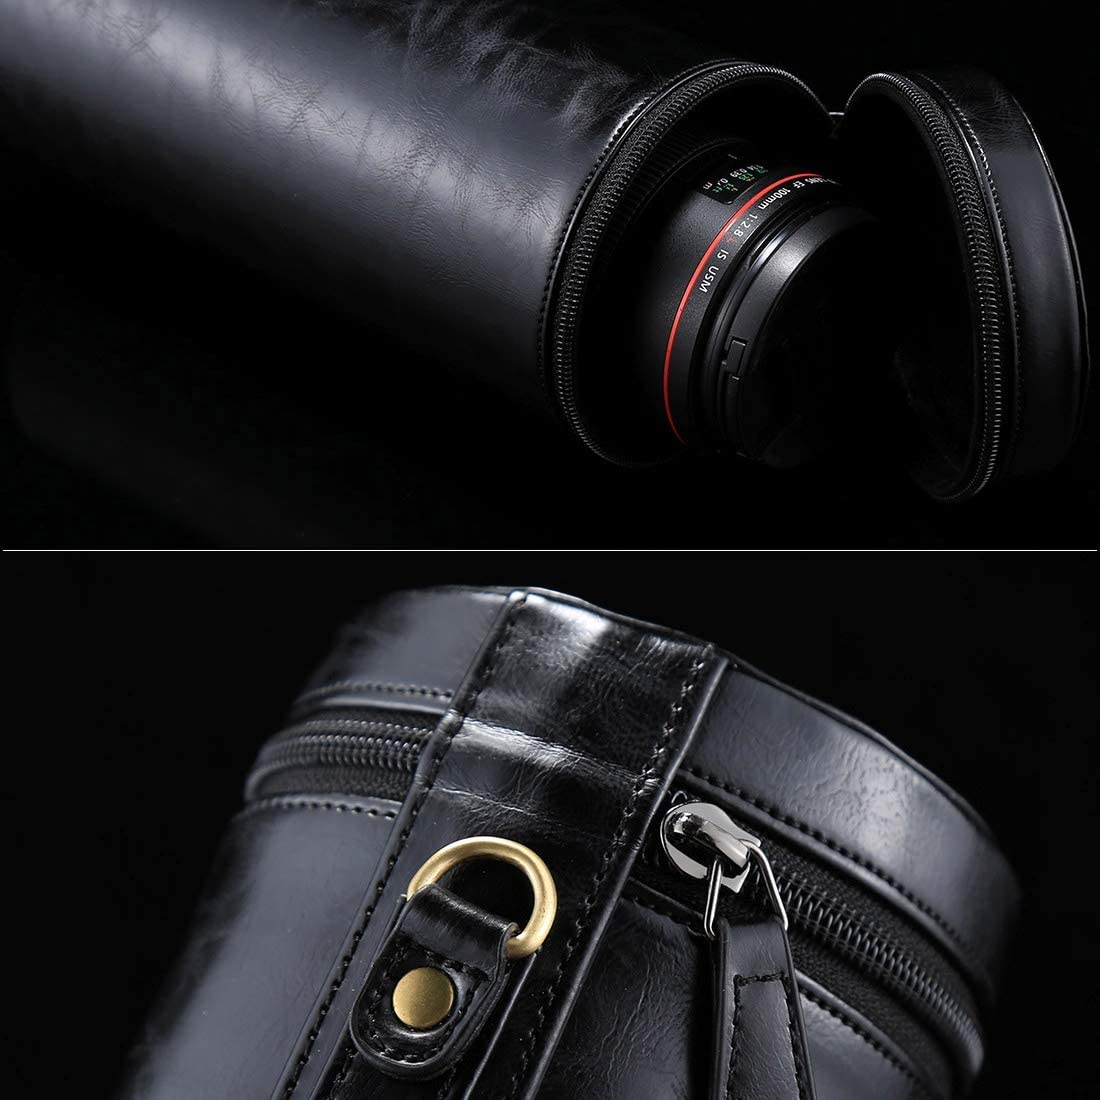 HUIFANGBU JHY Extra Large Lens Case Zippered PU Leather Pouch Box for DSLR Camera Lens Black Brown Size: 24.510.510.5cm Coffee Color : Black